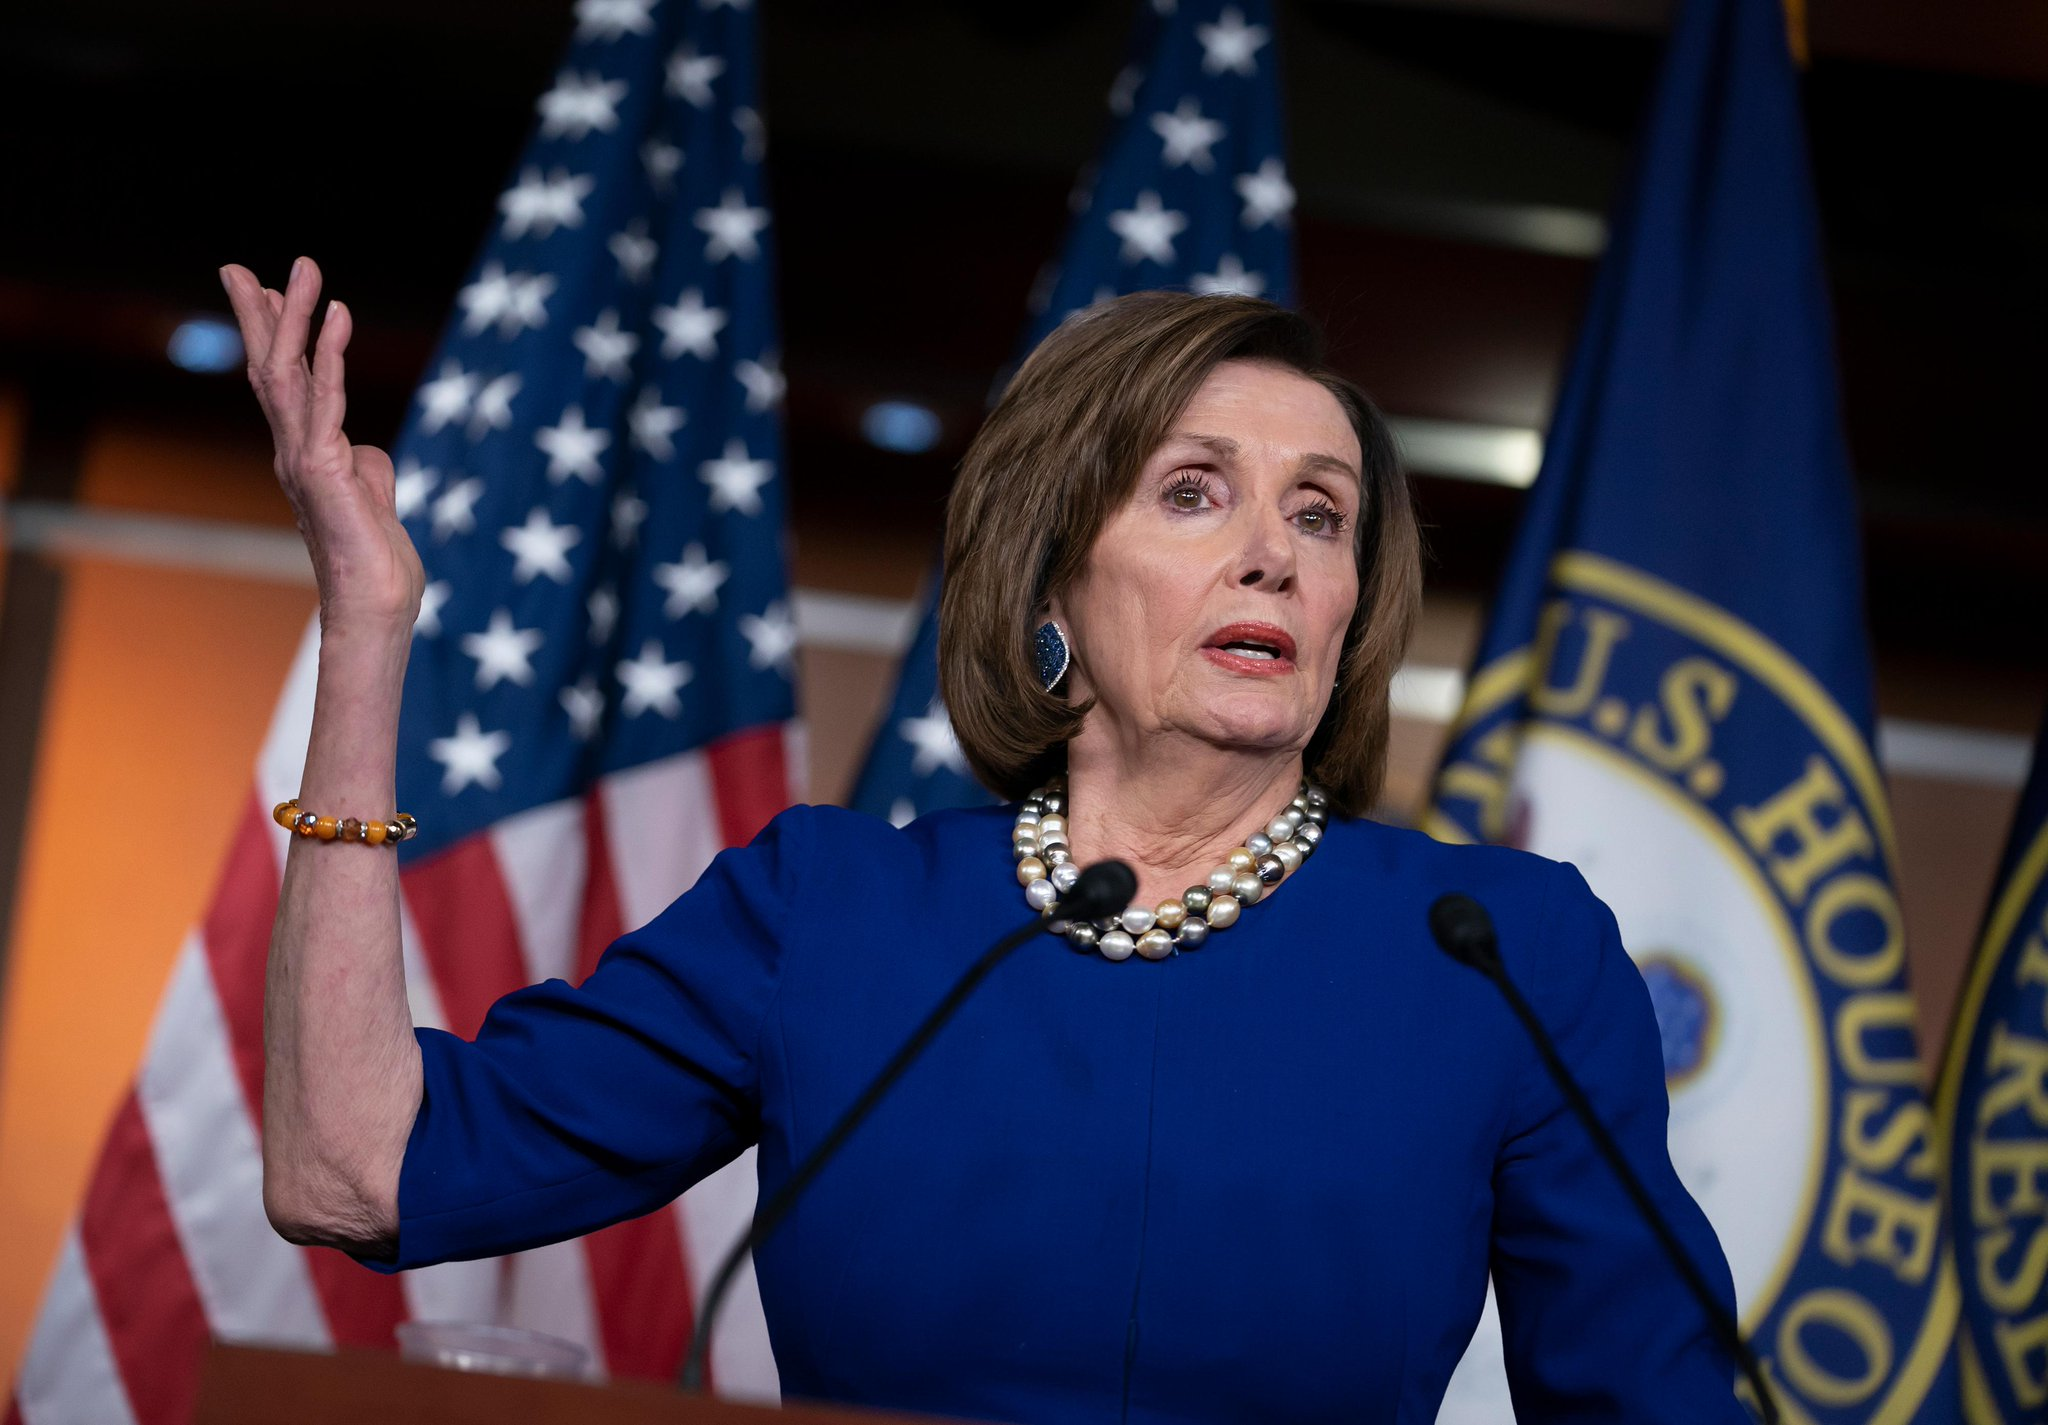 HAPPY BIRTHDAY to House Speaker Nancy Pelosi who is 80 years young today.